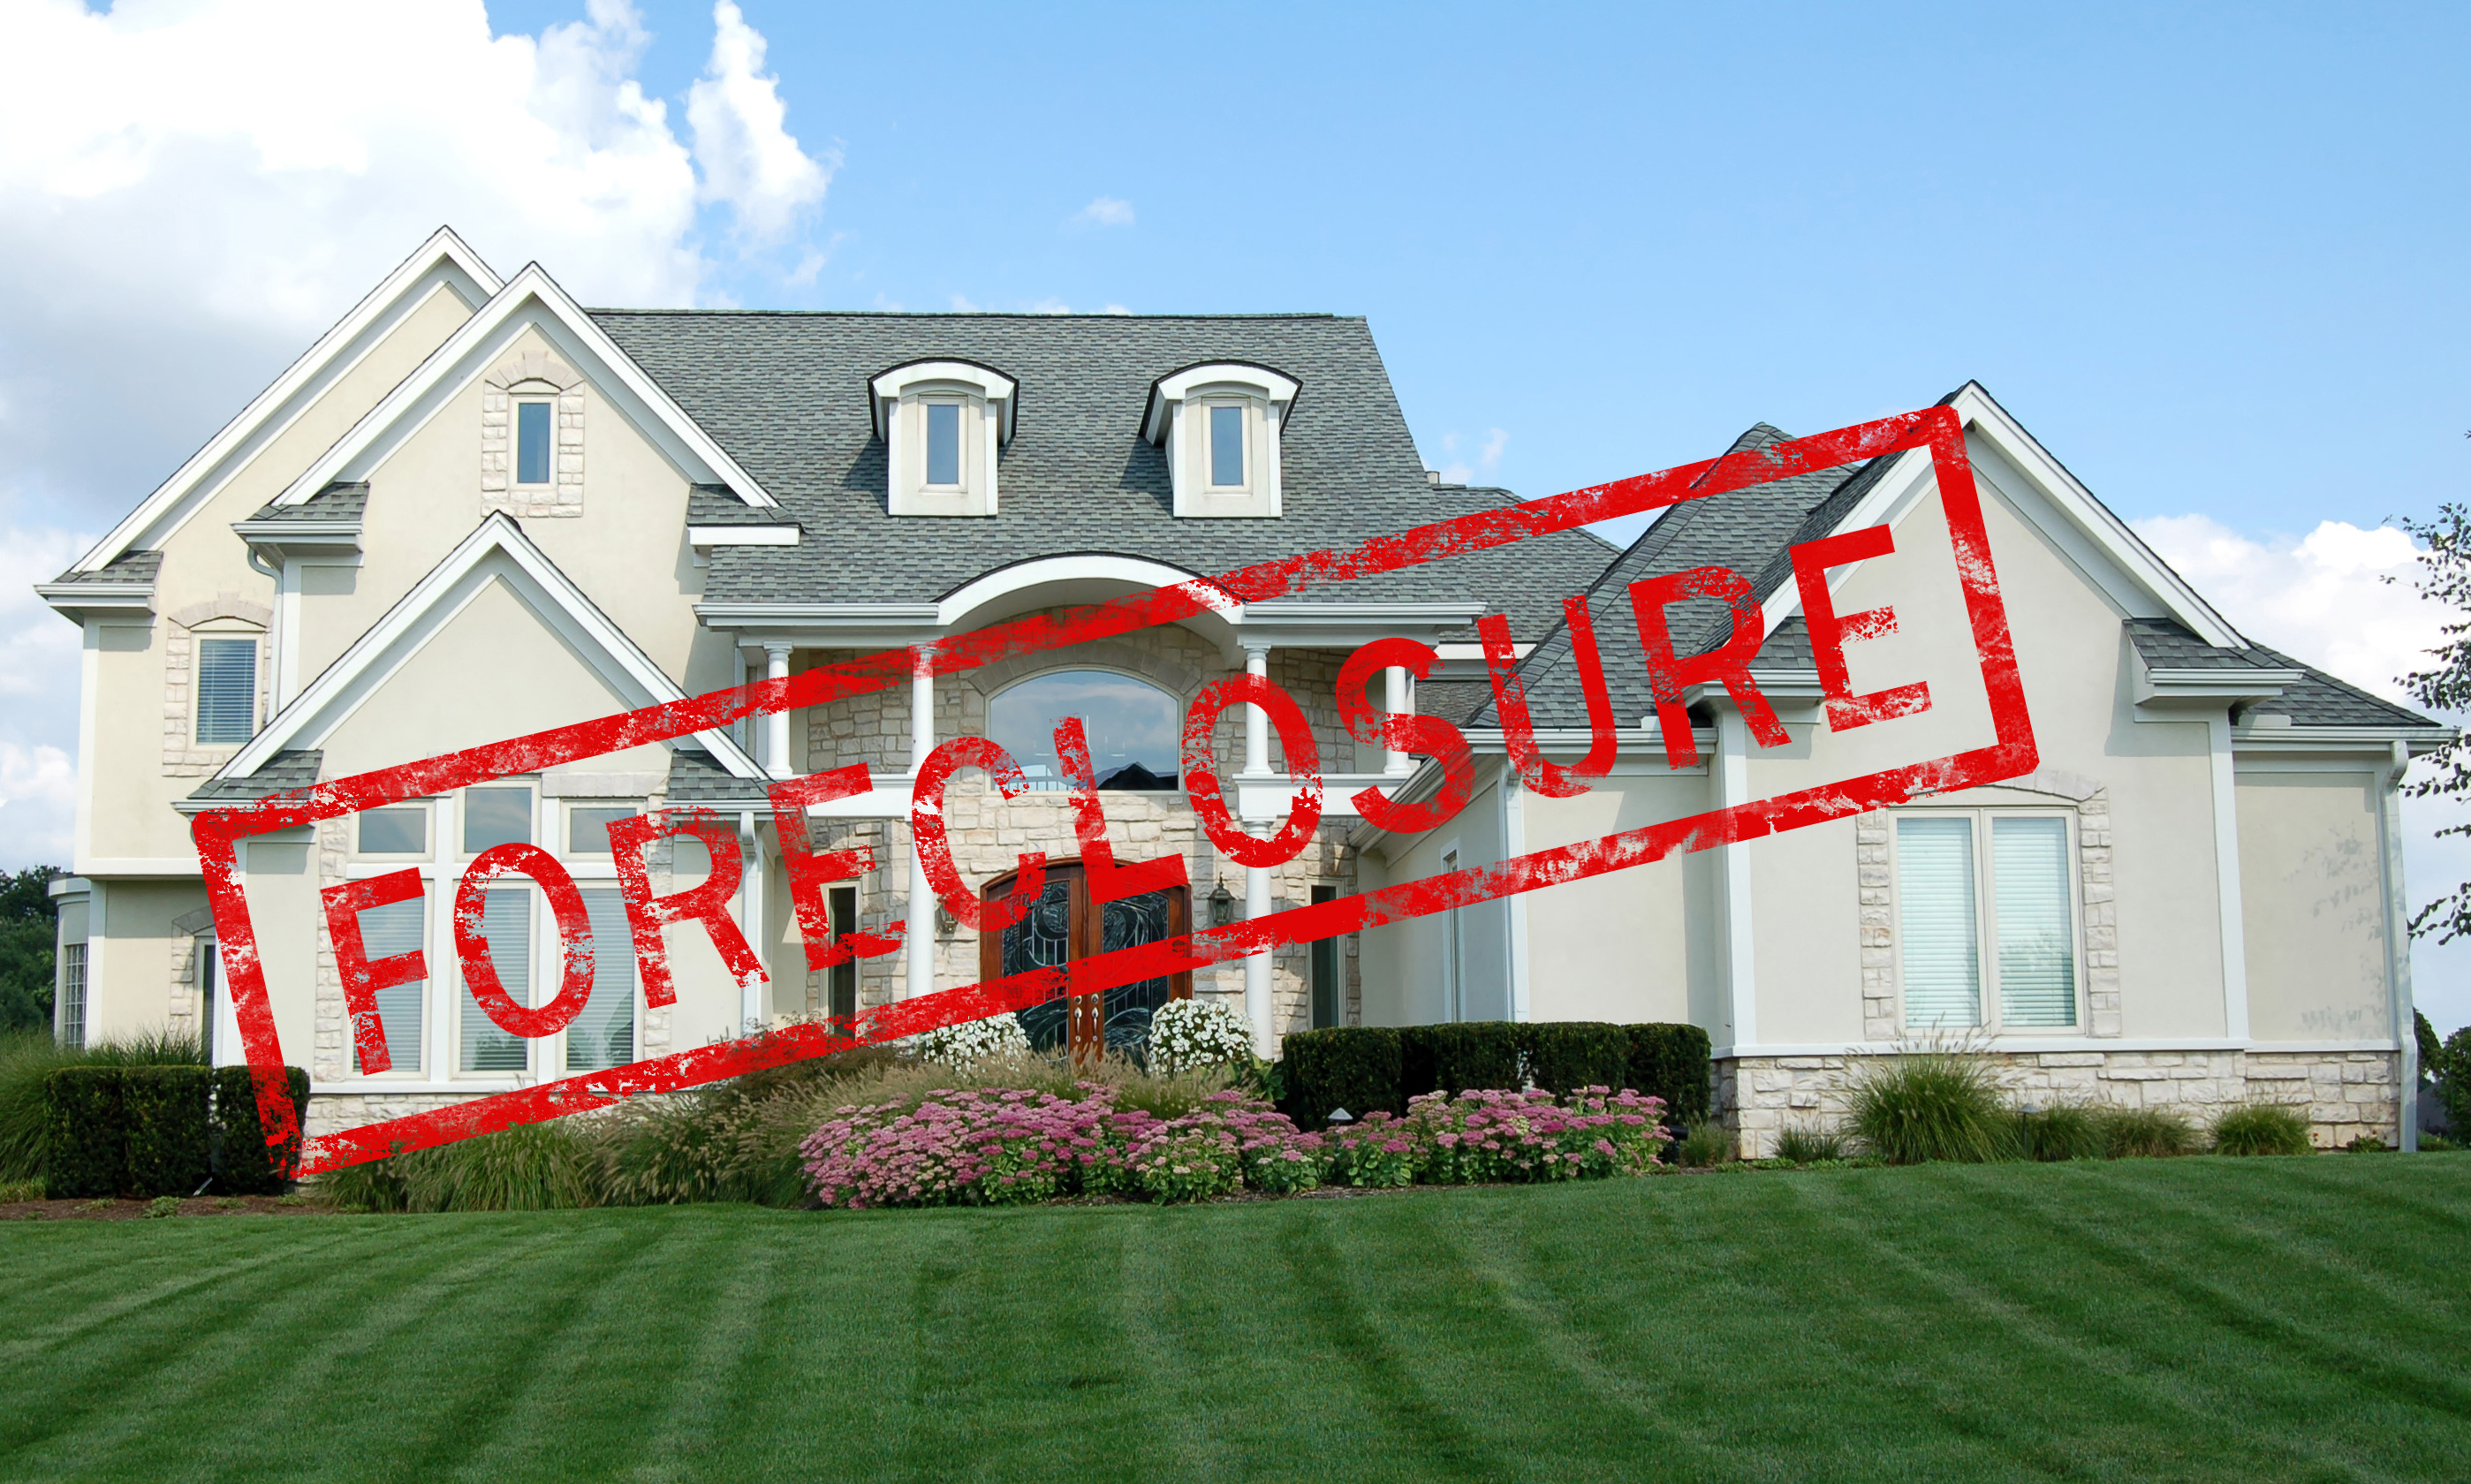 Call Draheim Appraisal Services, LLC when you need appraisals for Lucas foreclosures